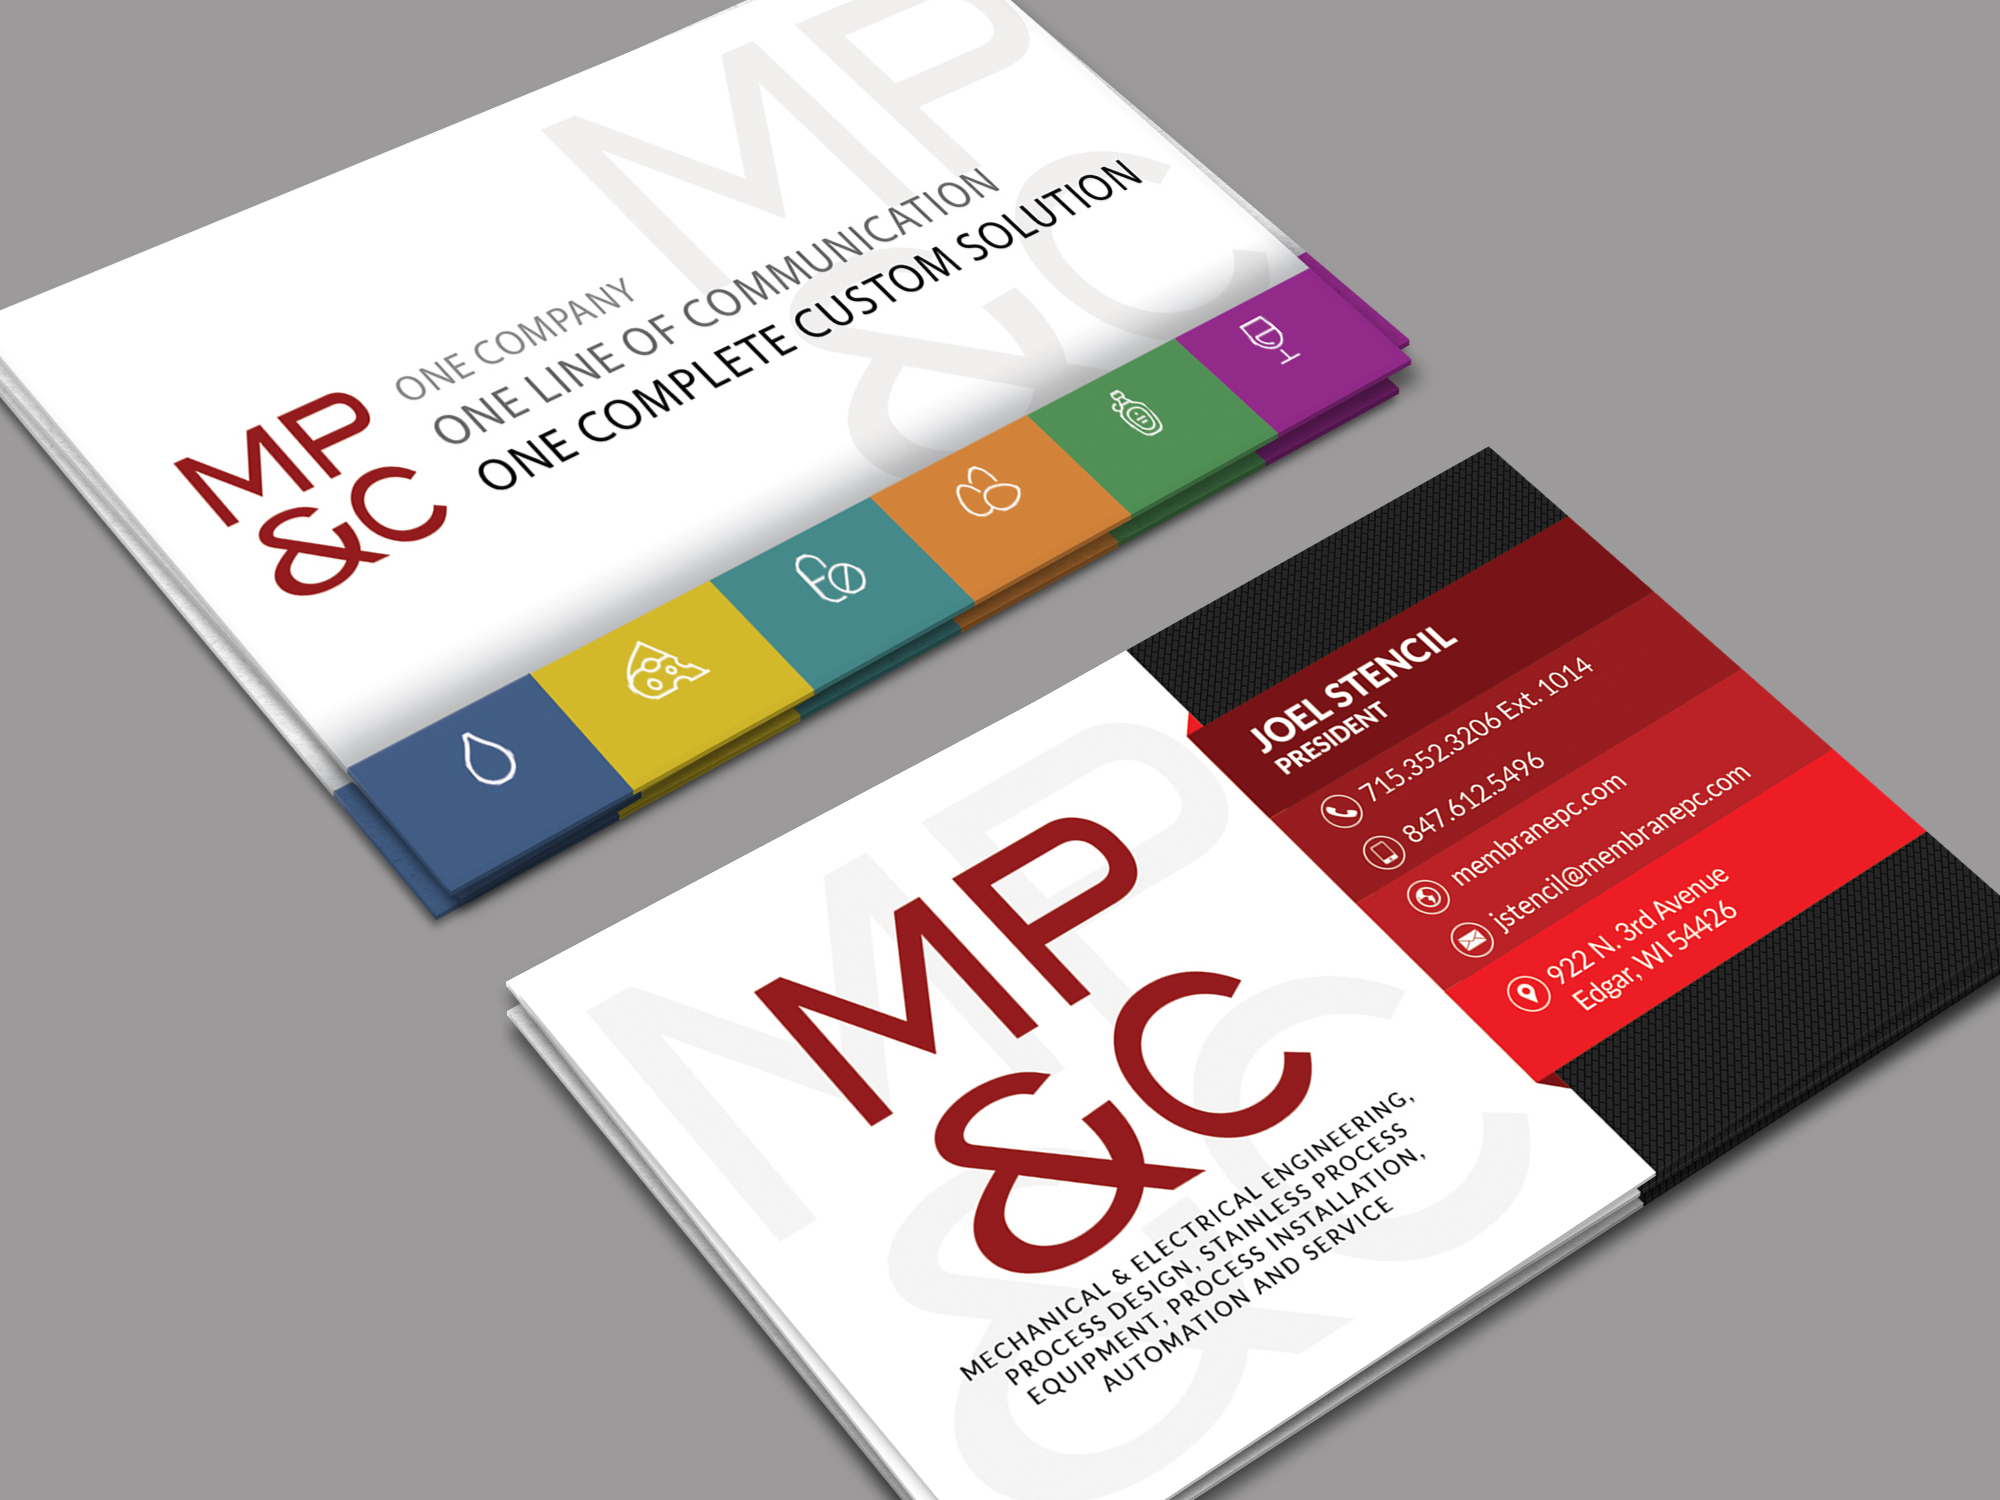 MPC Business Card Mockup.jpg